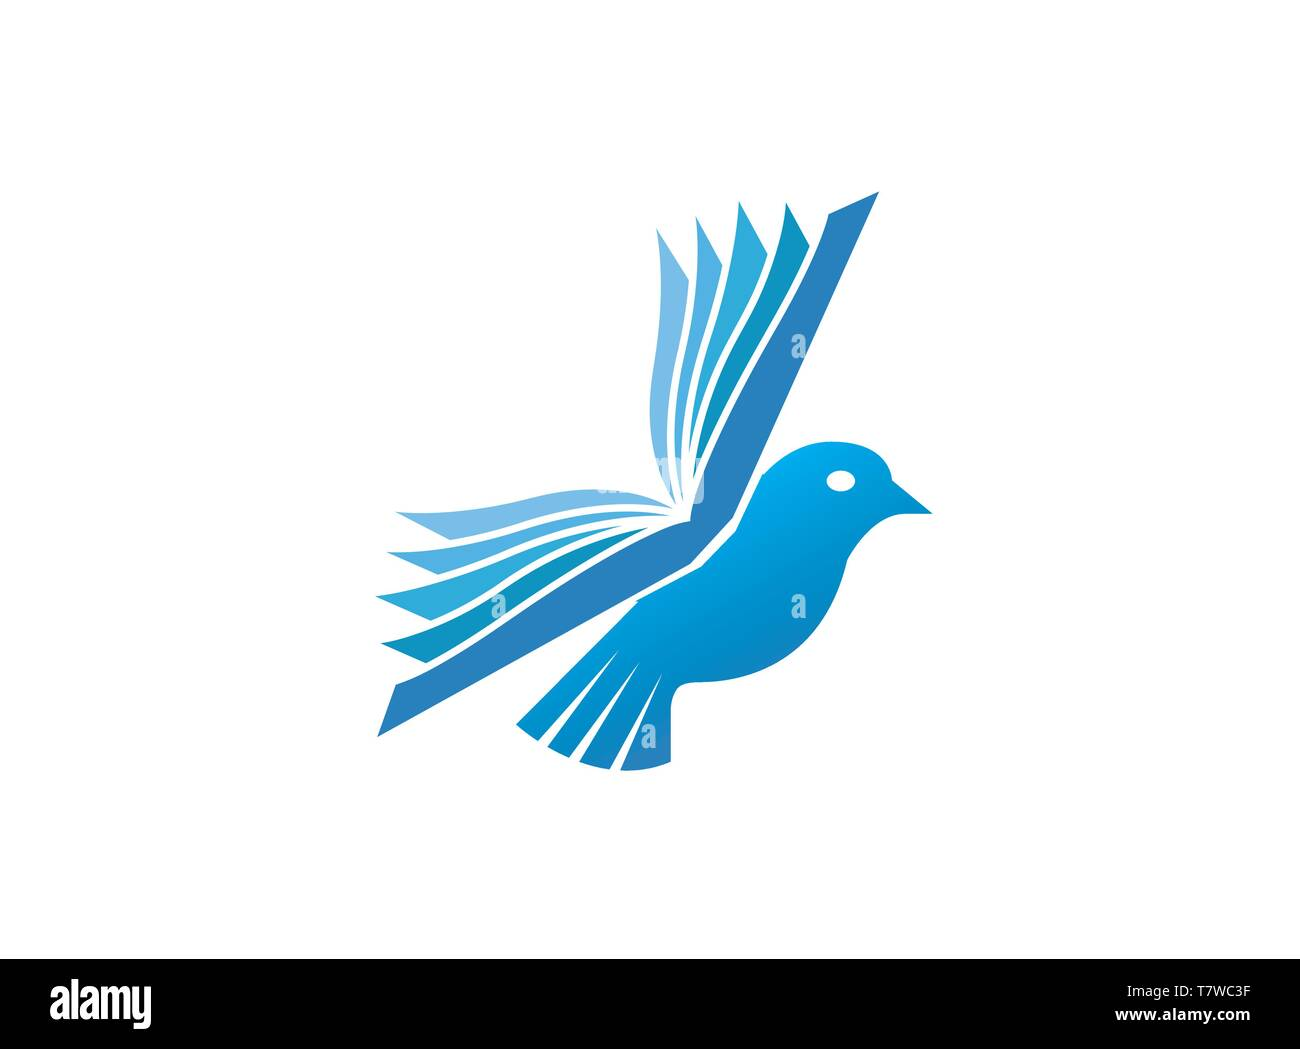 Dove bird fly with wings book for logo design illustration, education icon, read and learn symbol - Stock Vector